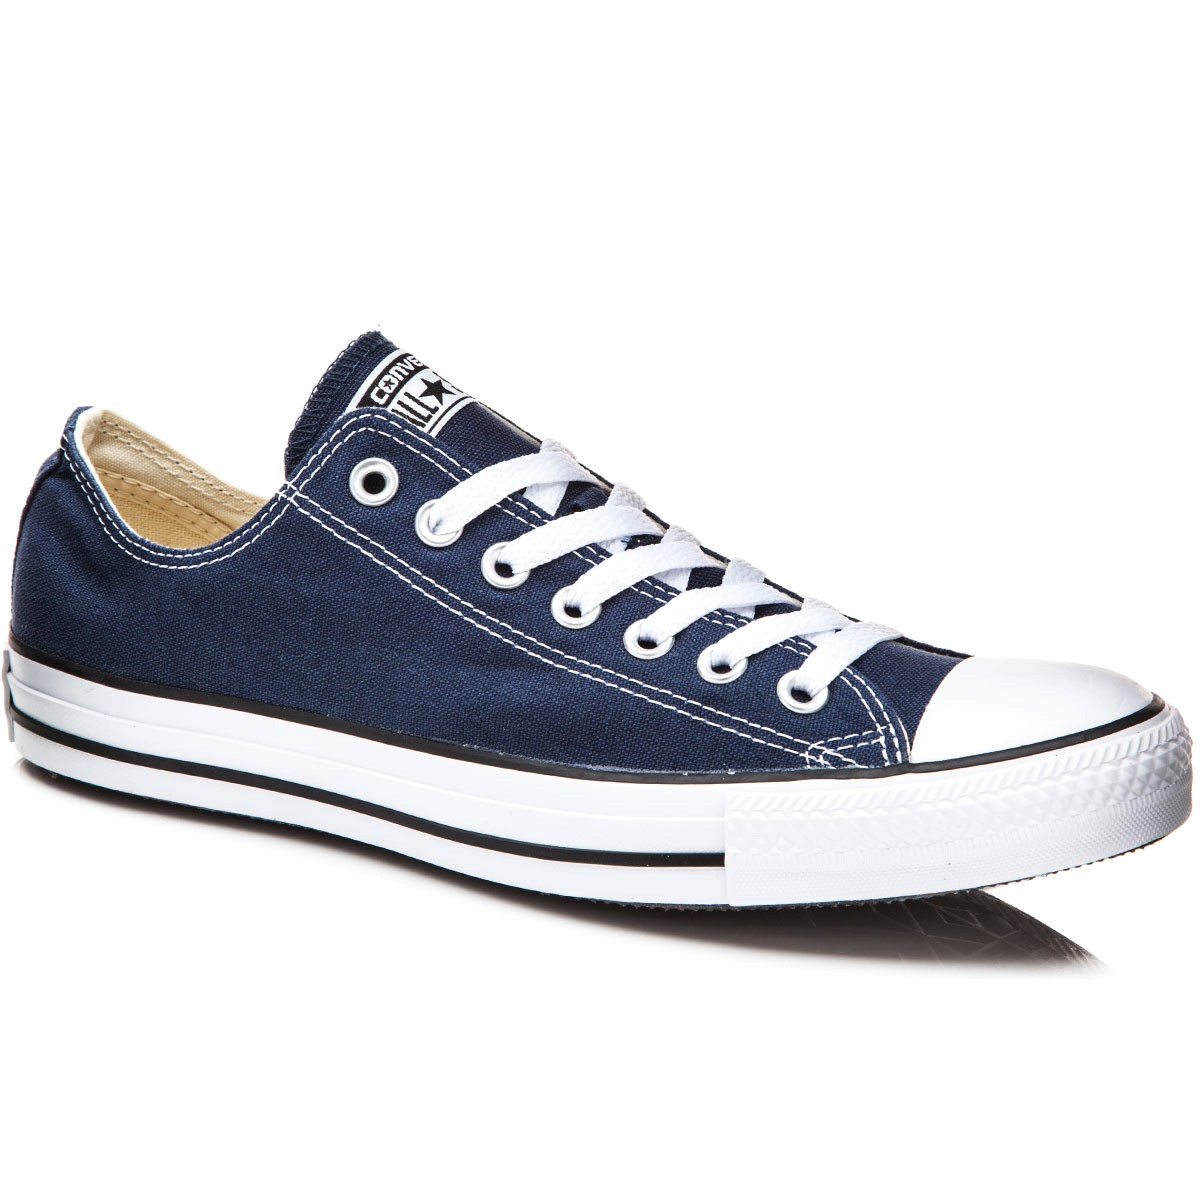 147e74b02f7d ... netherlands converse chuck taylor all star lo shoes 65b68 52147